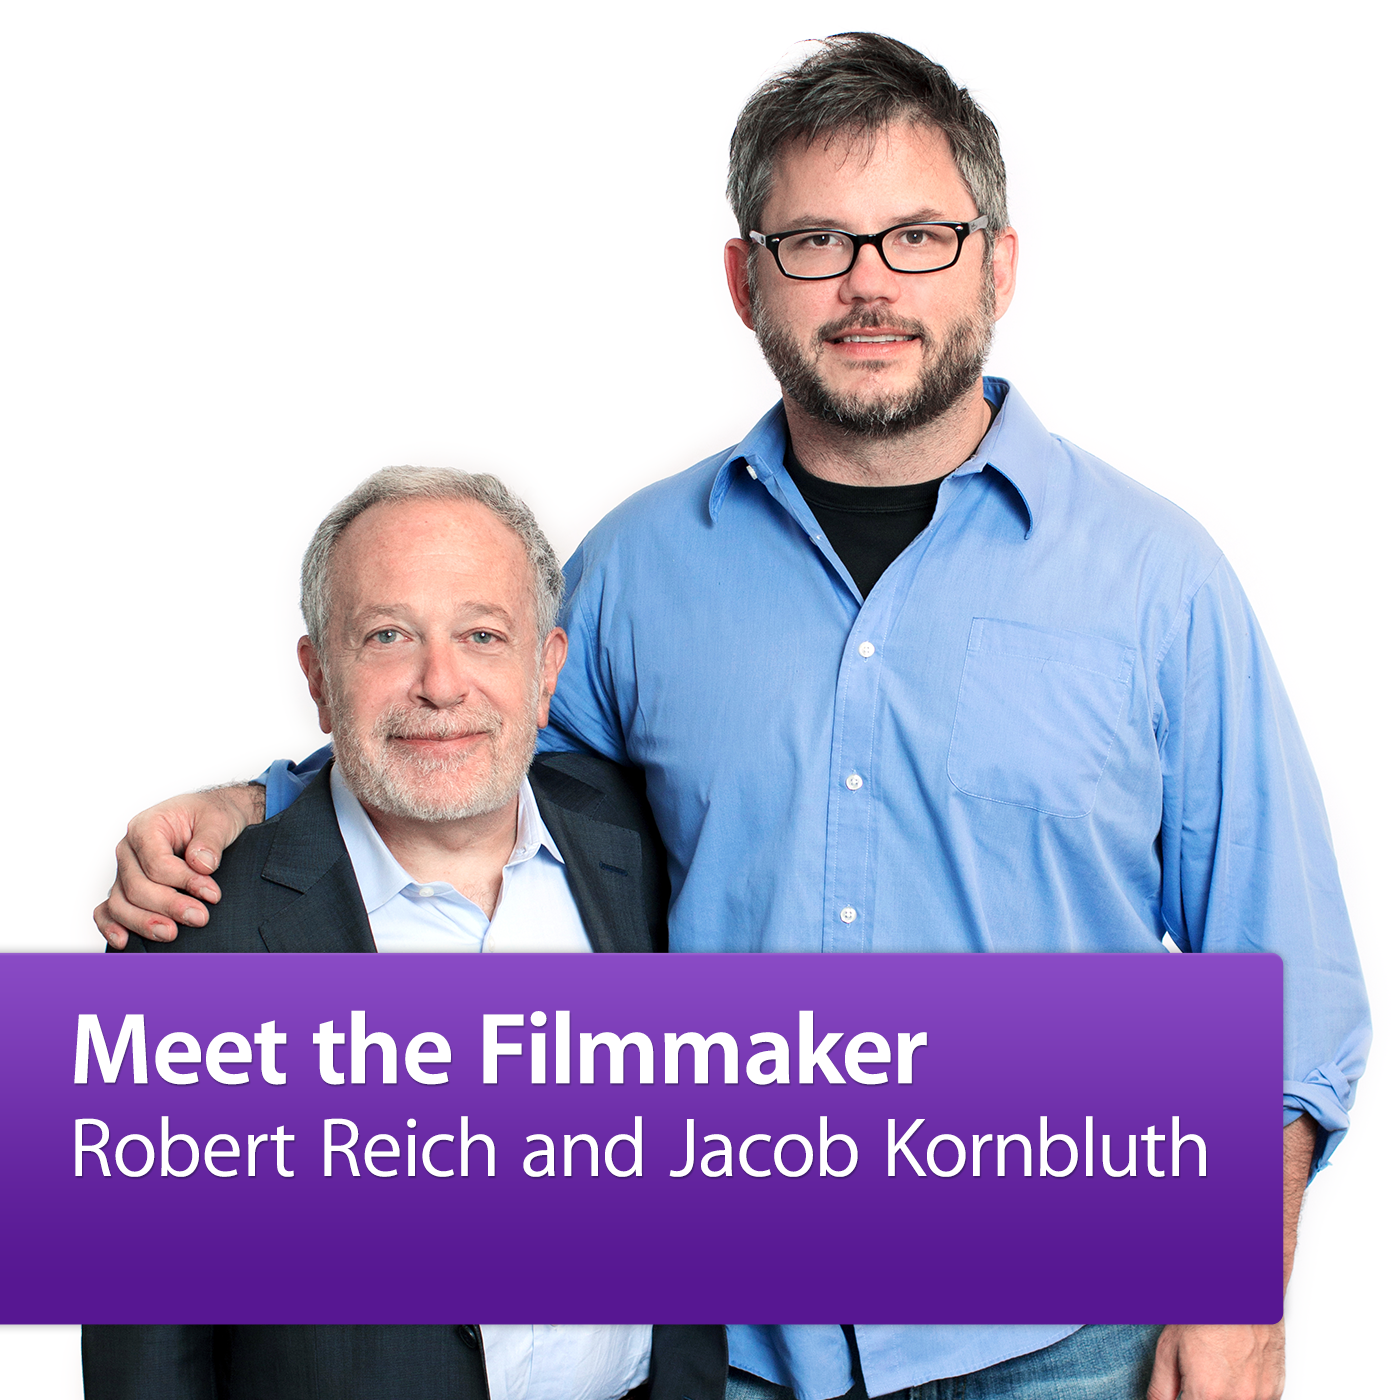 Robert Reich and Jacob Kornbluth: Meet the Filmmaker